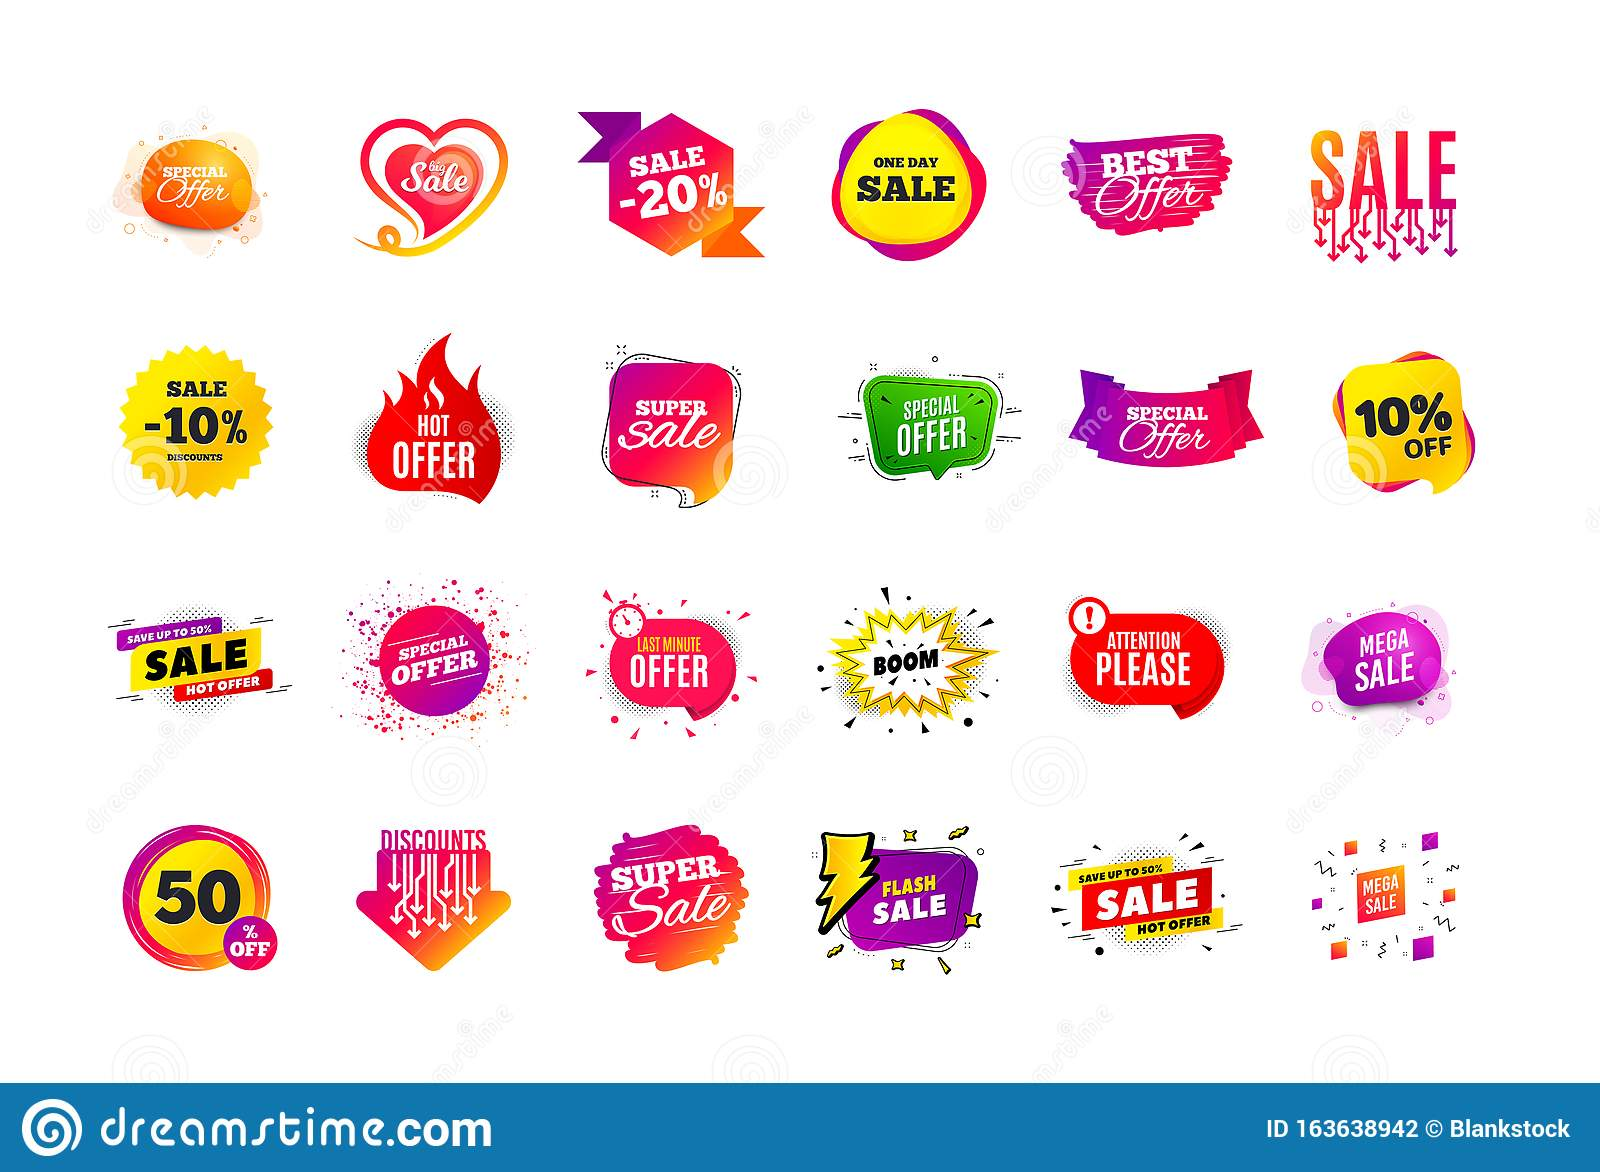 Sale Banner Badge Special Offer Discount Tags Coupon Shape Templates Best Offer Badge Super Discount Icons Vector Stock Vector Illustration Of Discounts Coupon 163638942